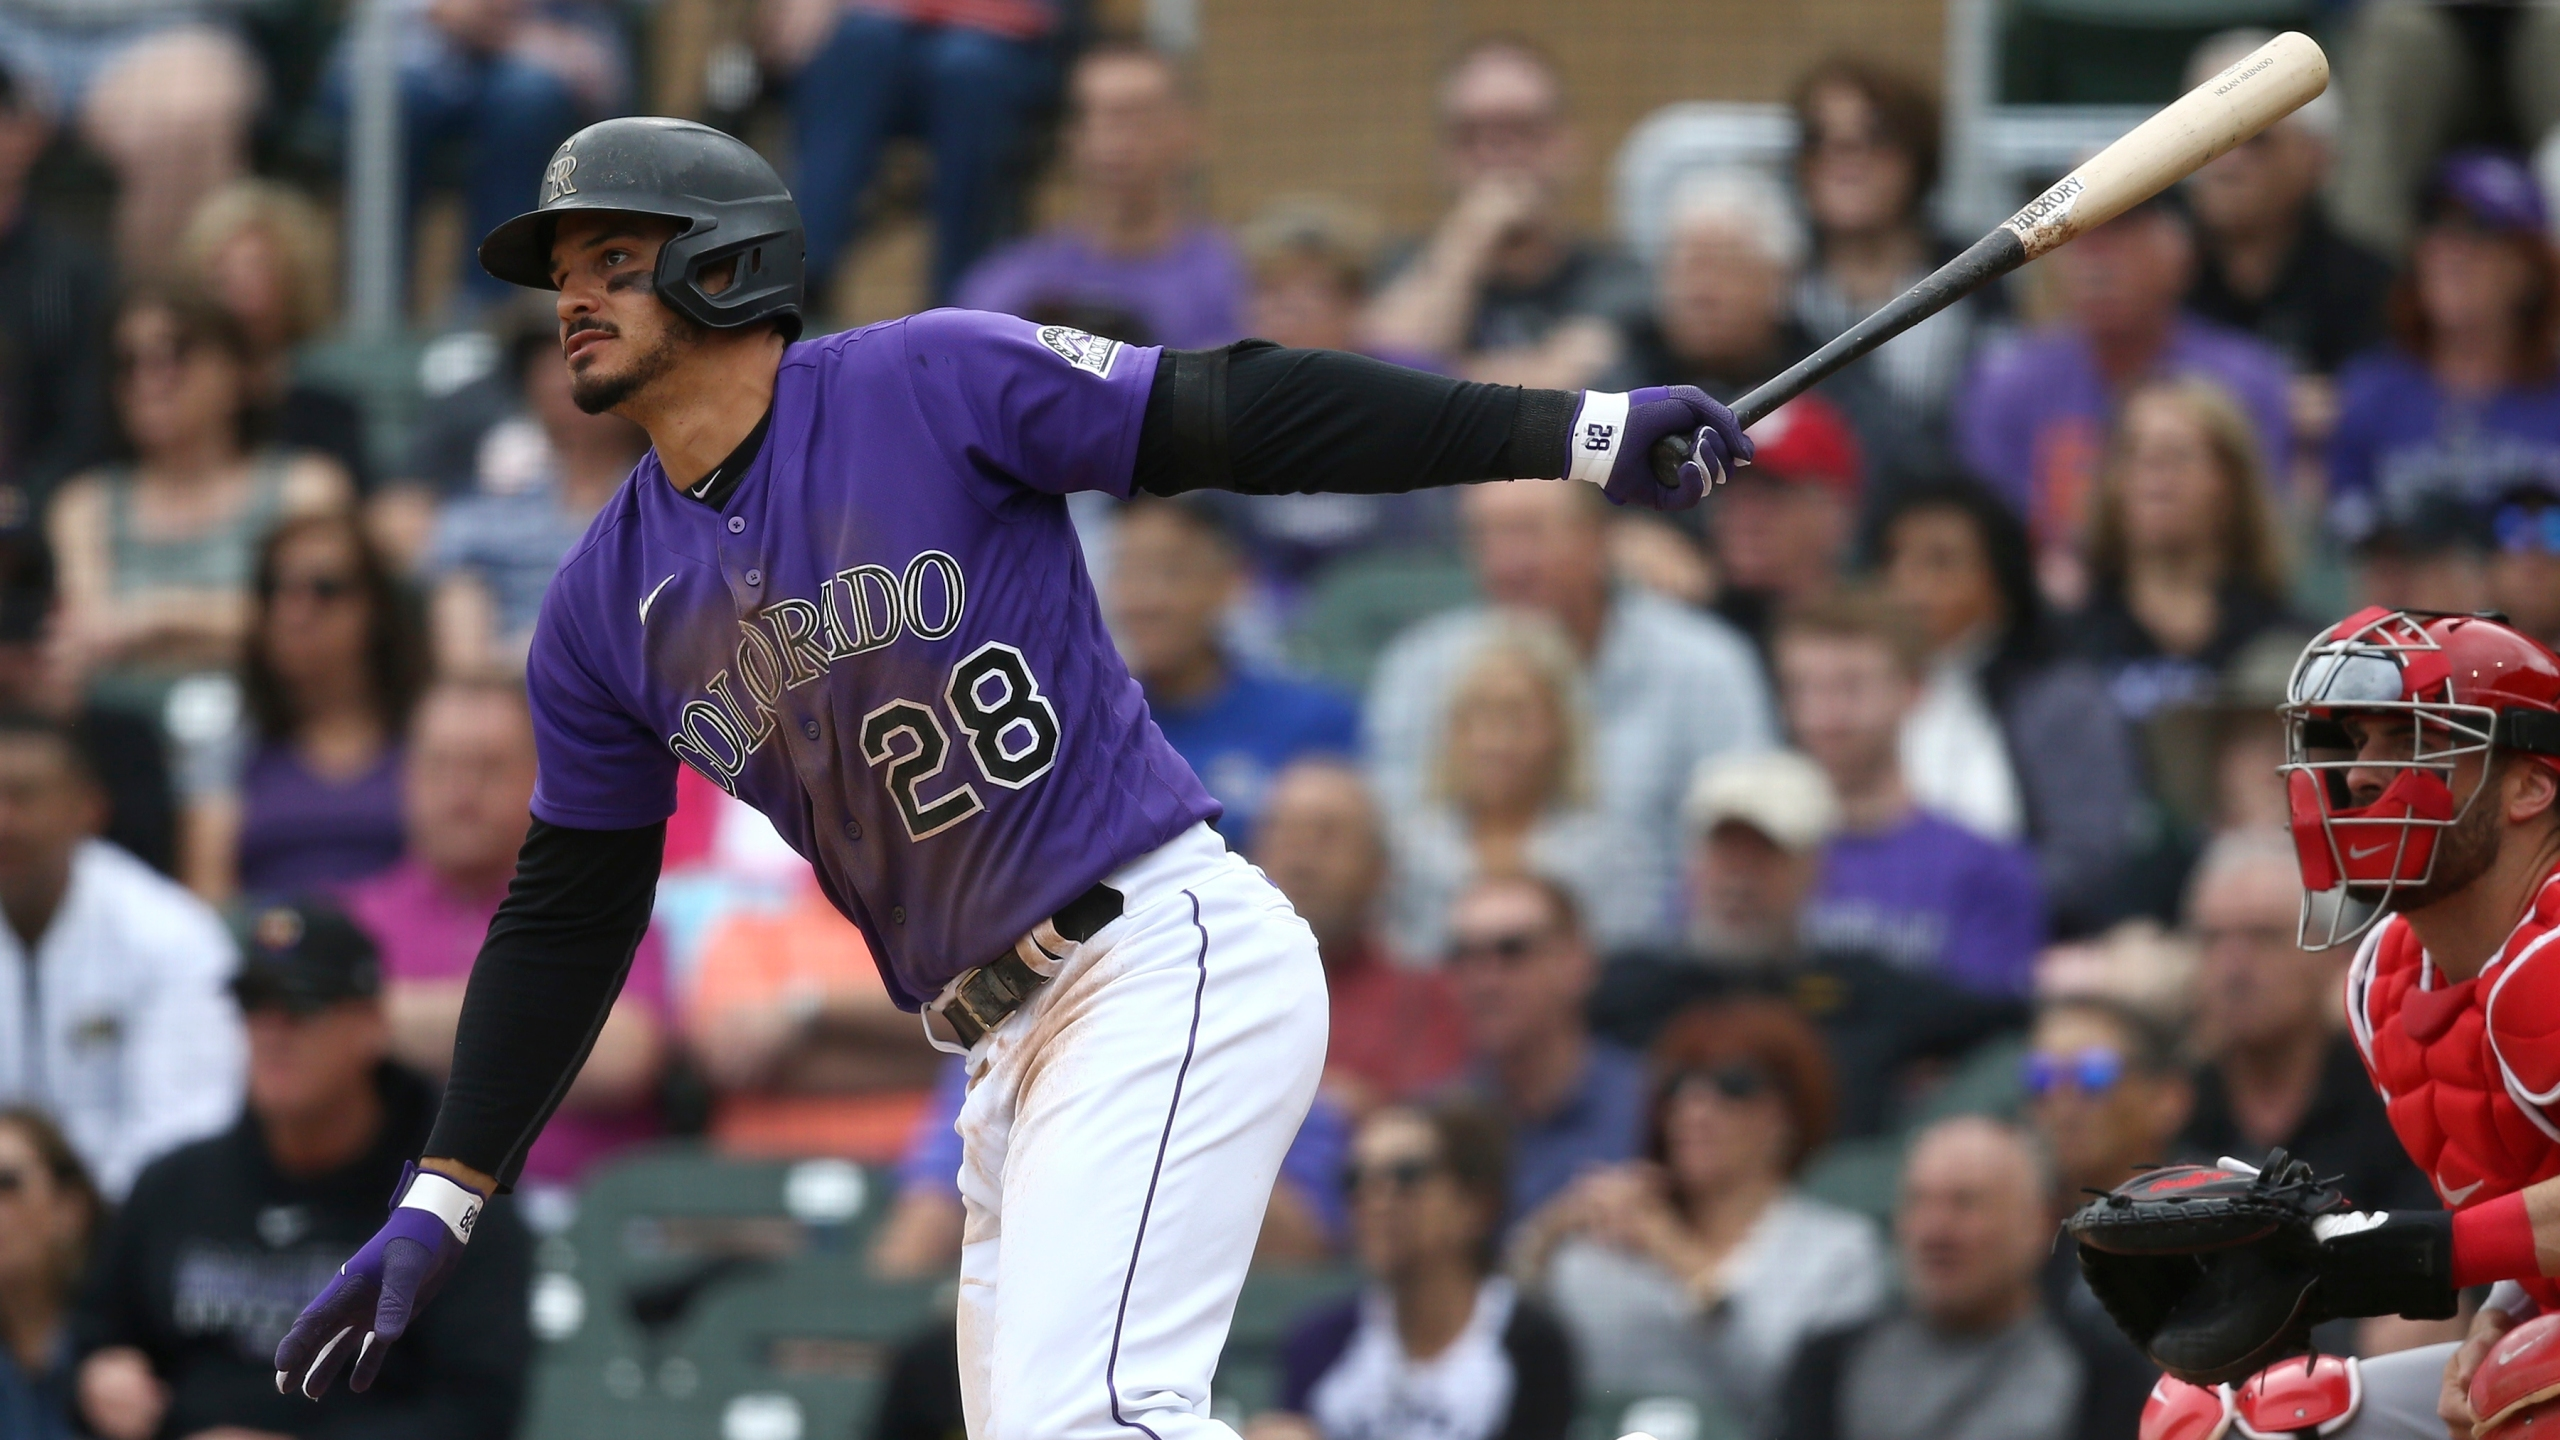 Colorado Rockies' Nolan Arenado follows through on a swing during the third inning of a spring training baseball game against the Cincinnati Reds Tuesday, March 10, 2020, in Scottsdale, Ariz. (AP Photo/Ross D. Franklin)